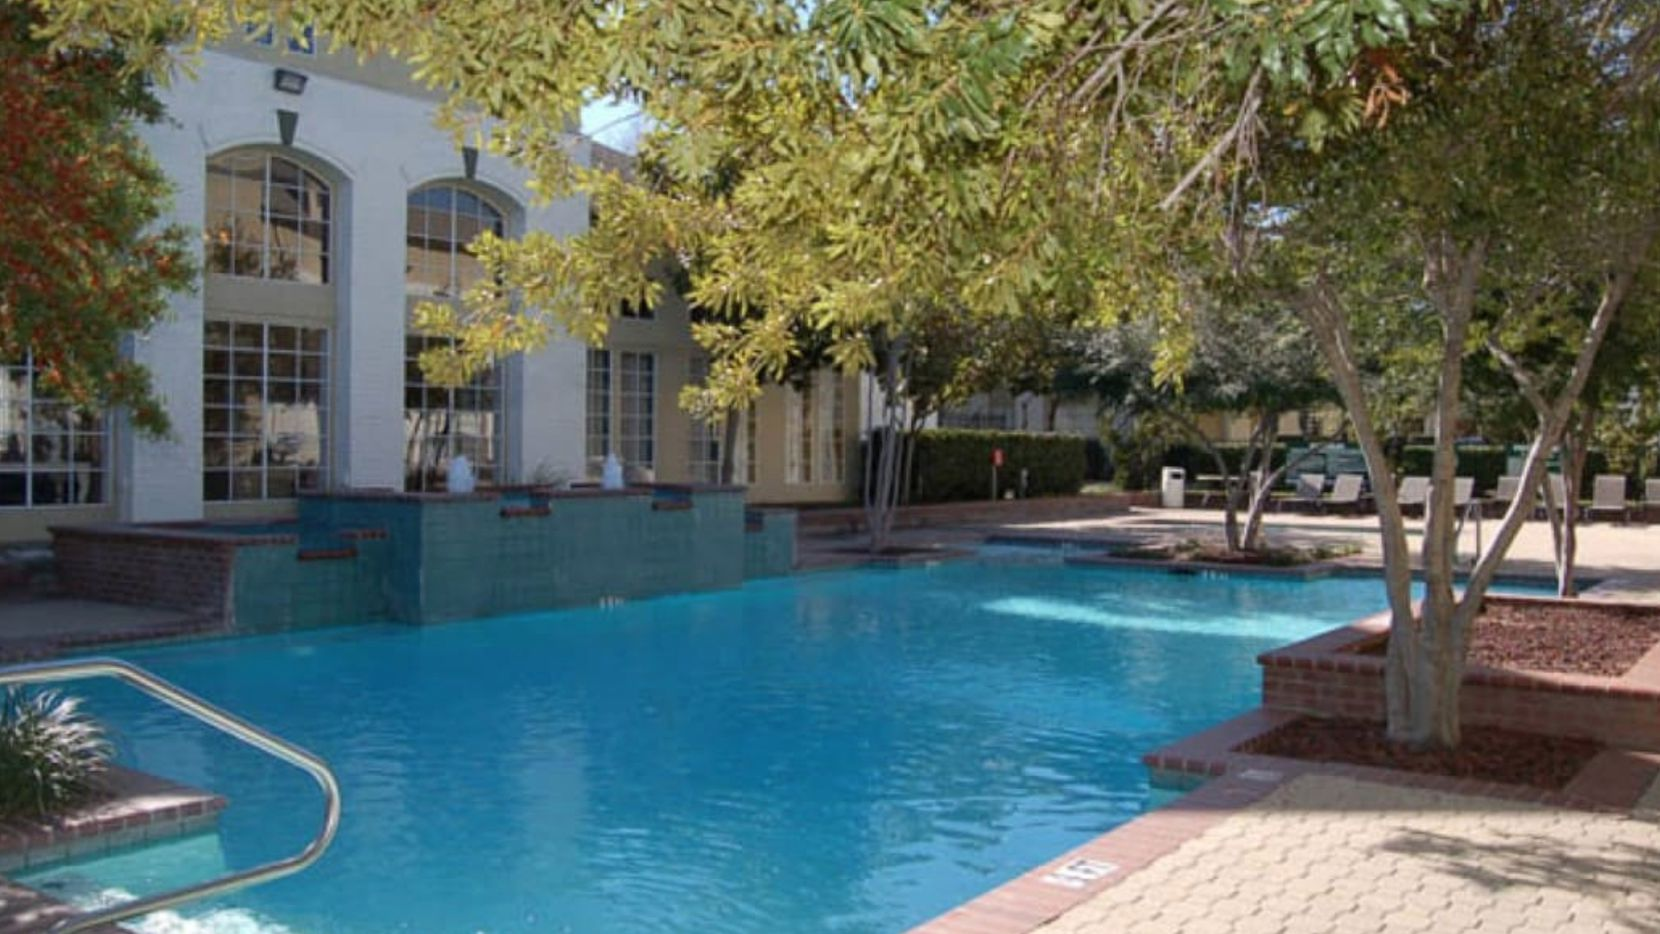 The Renaissance Parc apartments are at the Dallas North Tollway and Verde Valley in Far North Dallas adjacent to the Village on the Parkway  shopping center.